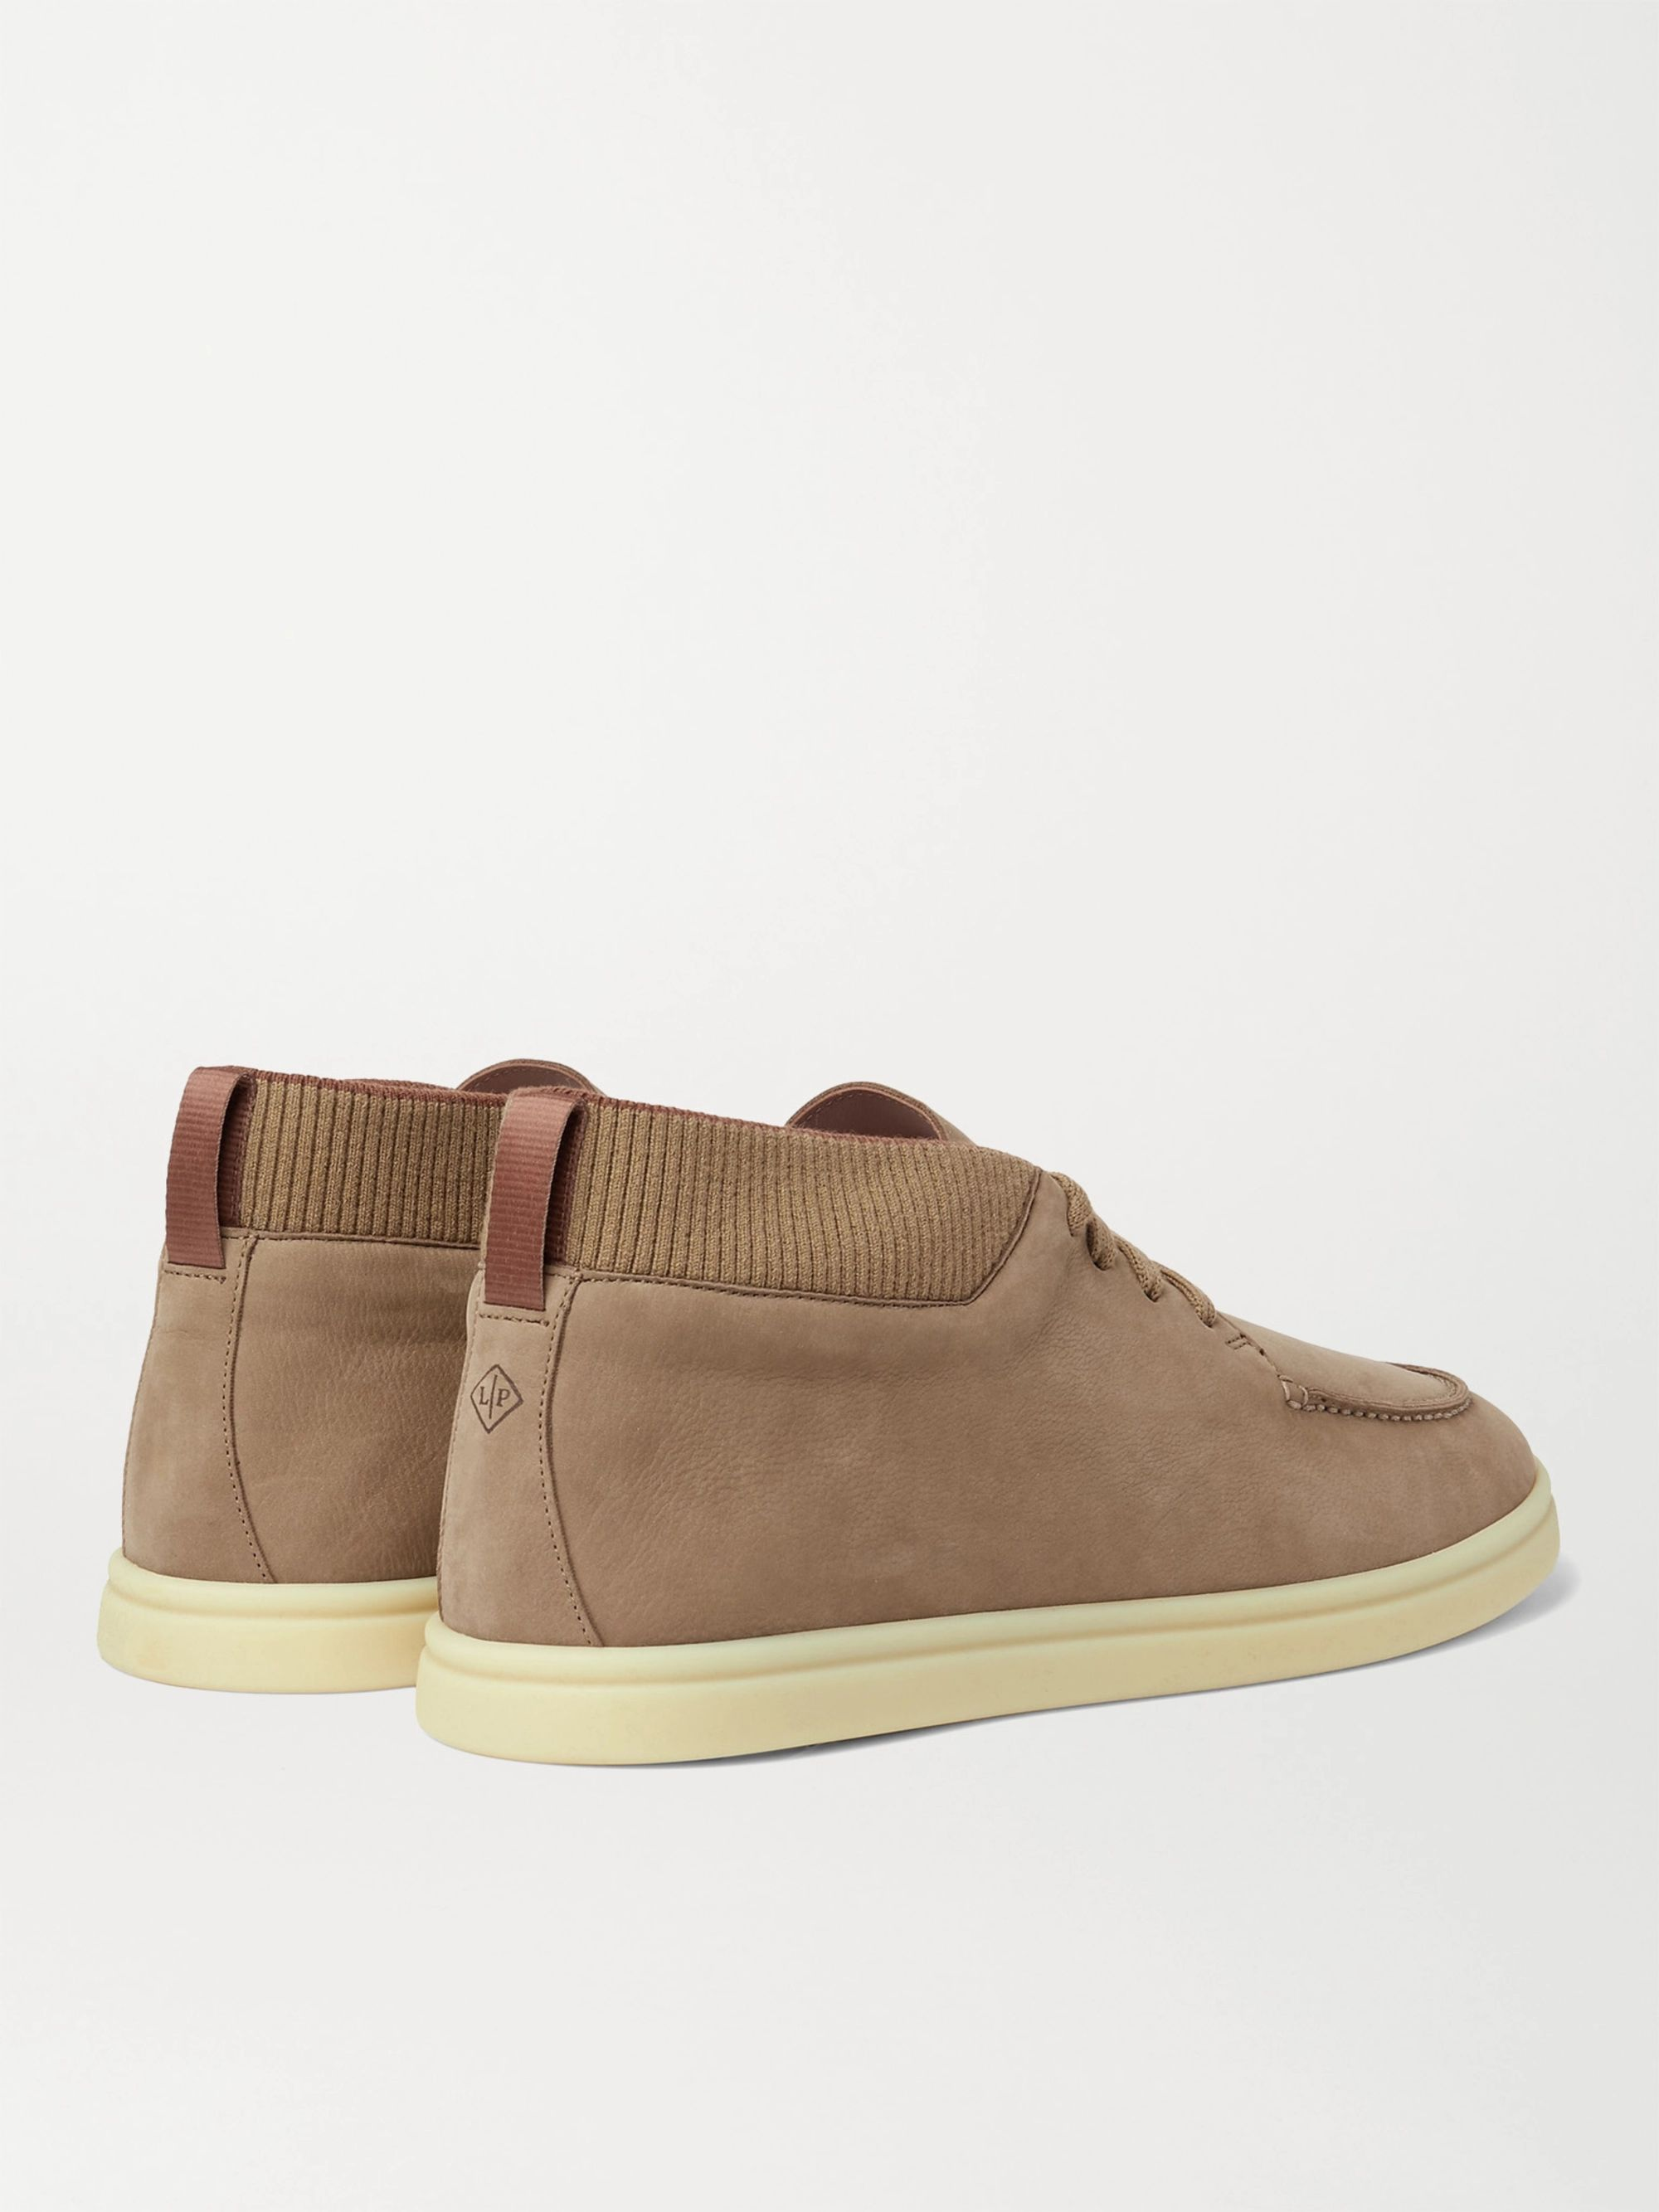 LORO PIANA Soho Walk Nubuck High-Top Sneakers